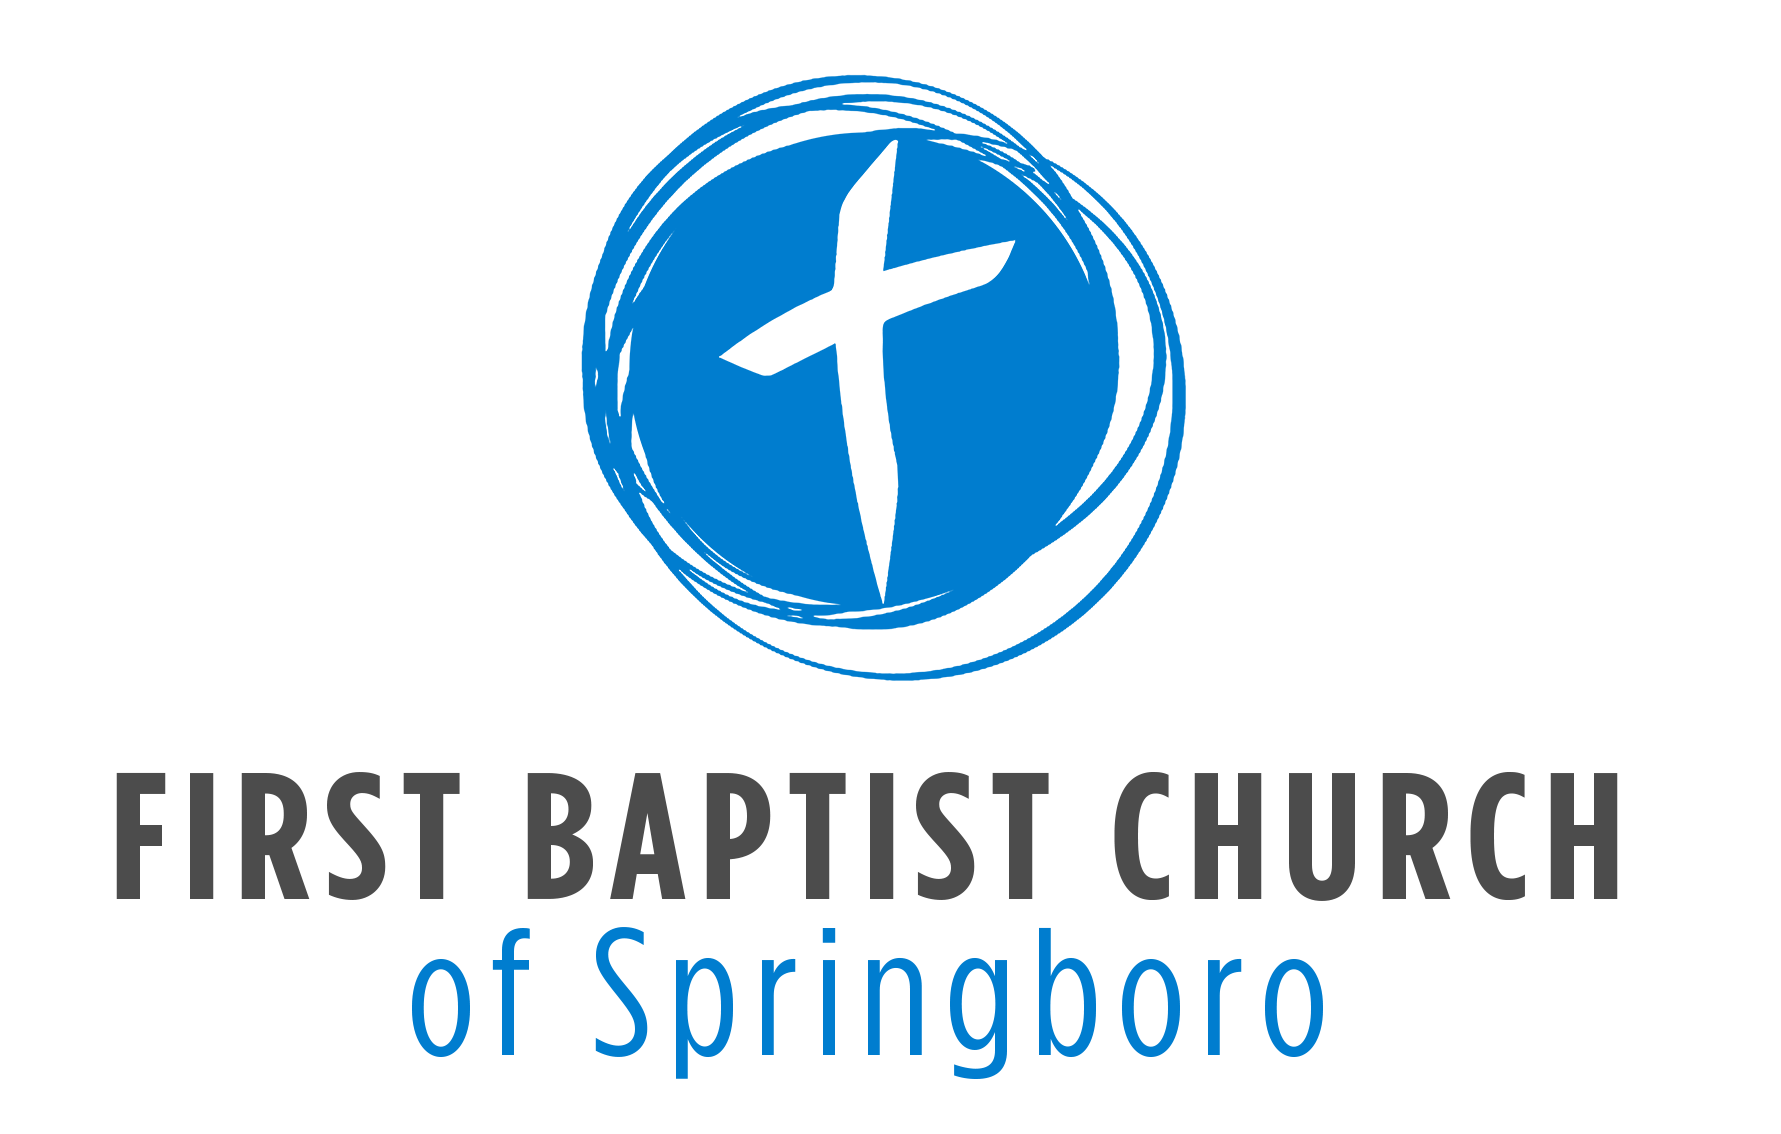 First Baptist Church of Springboro